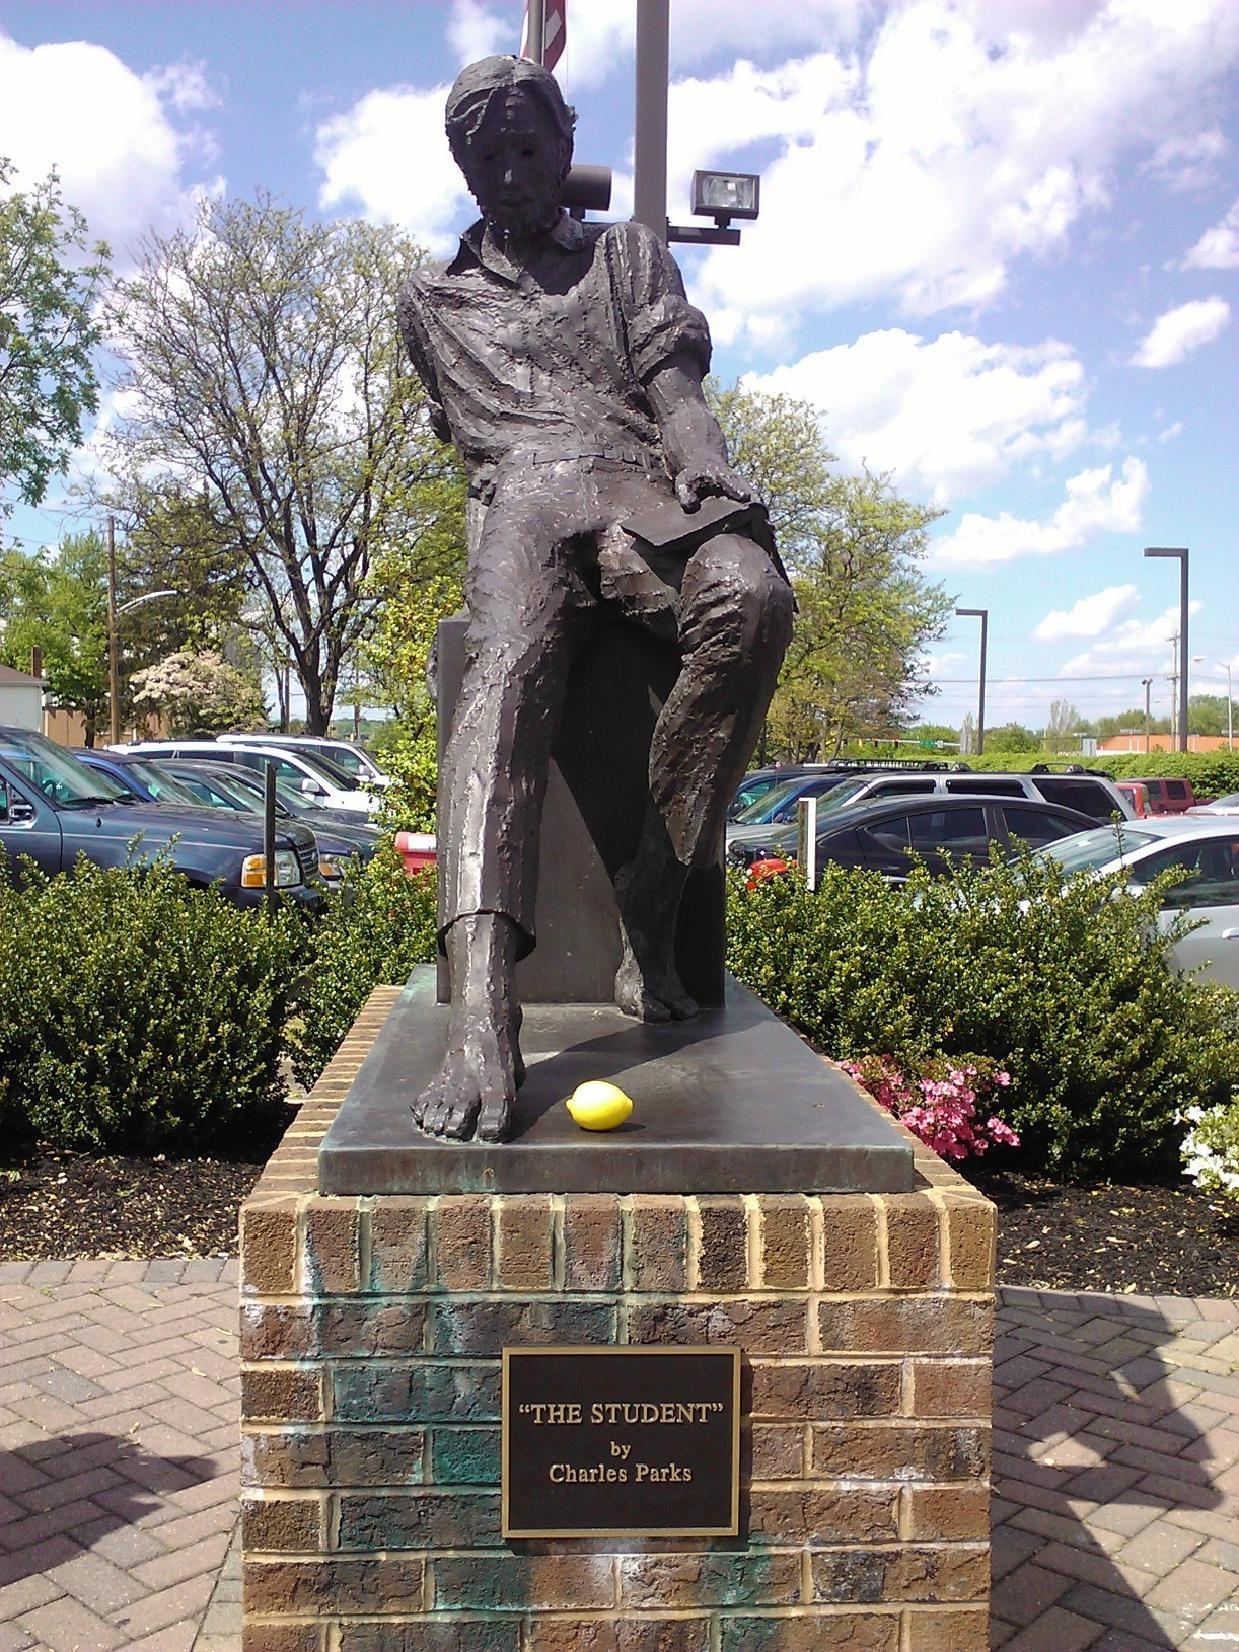 221b-bagend:  This statue sits in front of the Newark Free Library in Delaware, which is one of my favorite places. Libraries are just so special to me, because I've loved reading and books my whole life, and while the library is pretty small, particularly in comparison to bigger city libraries, it still has these amazing cubbyholes with comfy chairs and these awesome glass cases where they show local pieces, like art from the high schools around here, and historical tools. I thought it was really fitting to take this picture in front of a library, particularly one where I've spent so much time and love dearly, because of John Finnemore's amazing way of manipulating words and grammar for comedic effect, and also all the allusions to literature he makes both in Cabin Pressure and John Finnemore's Souvenir Programme. It's one of the main reasons I'm such a huge fan of his. So my message is this: Mr. Finnemore, thanks so much for your radio shows, particularly Cabin Pressure. The episodes are always so phenomenal, and the reader in me loves all the allusions to novels! Much love from Newark, Delaware, United States.♥ Cassie my contribution to the Lemons in Landmarks Project :)  OMG There's someone else from Newark that's into Cabin Pressure!?!